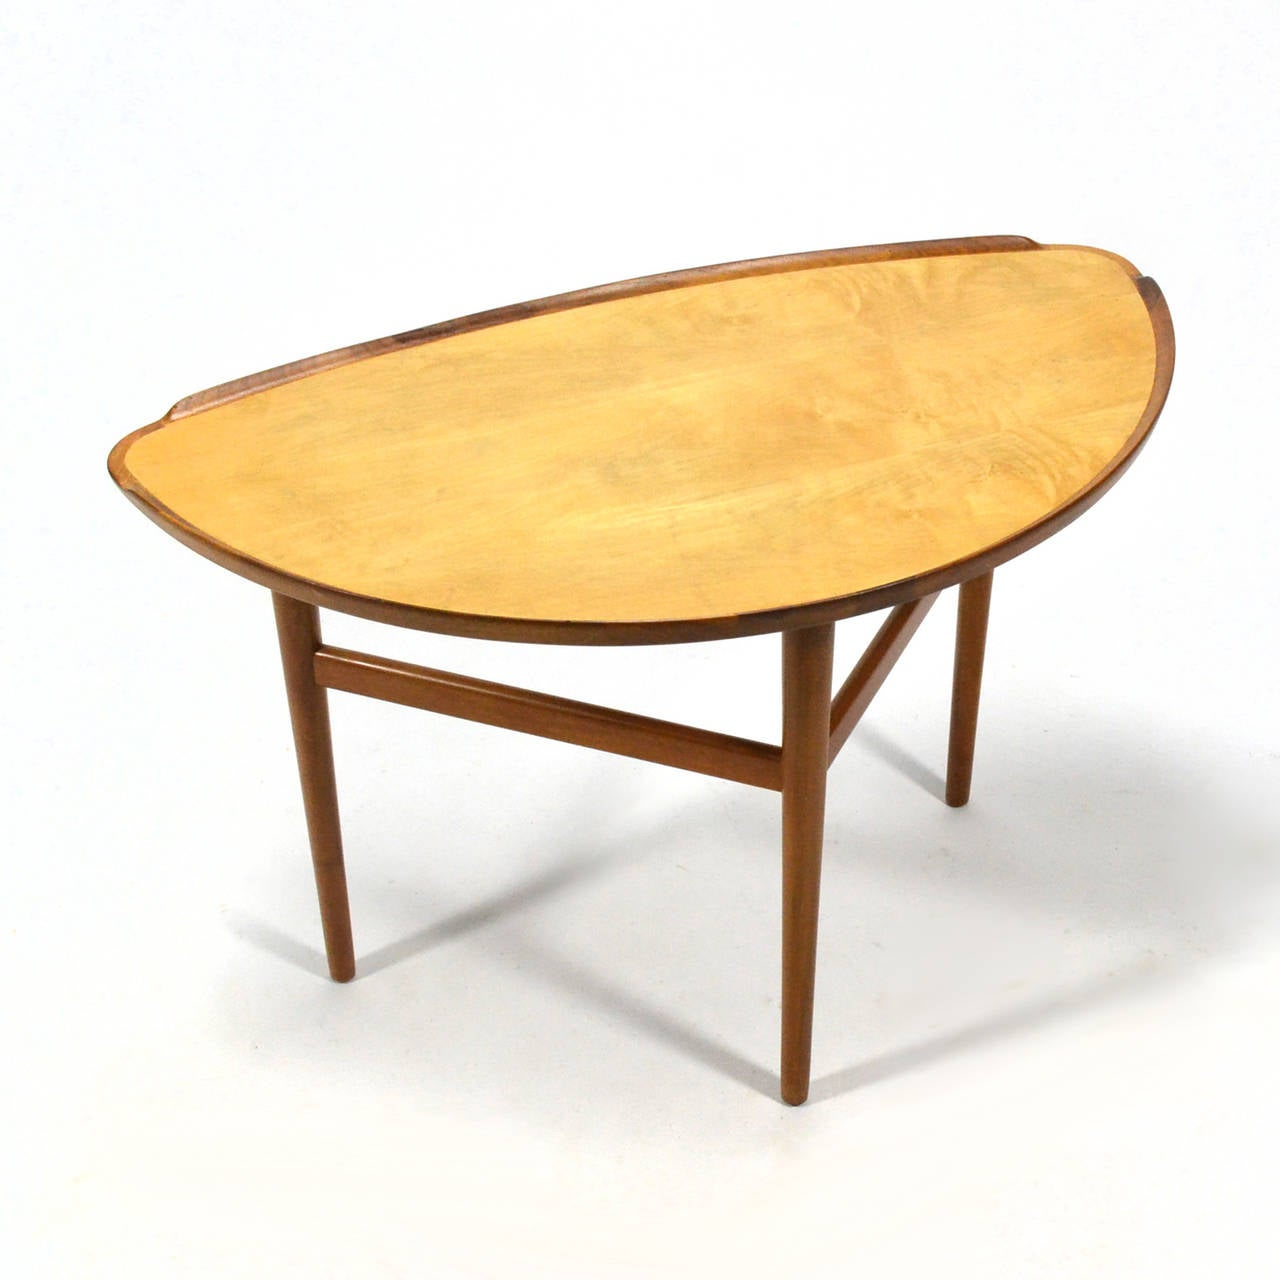 Finn Juhl Table For Sale 2